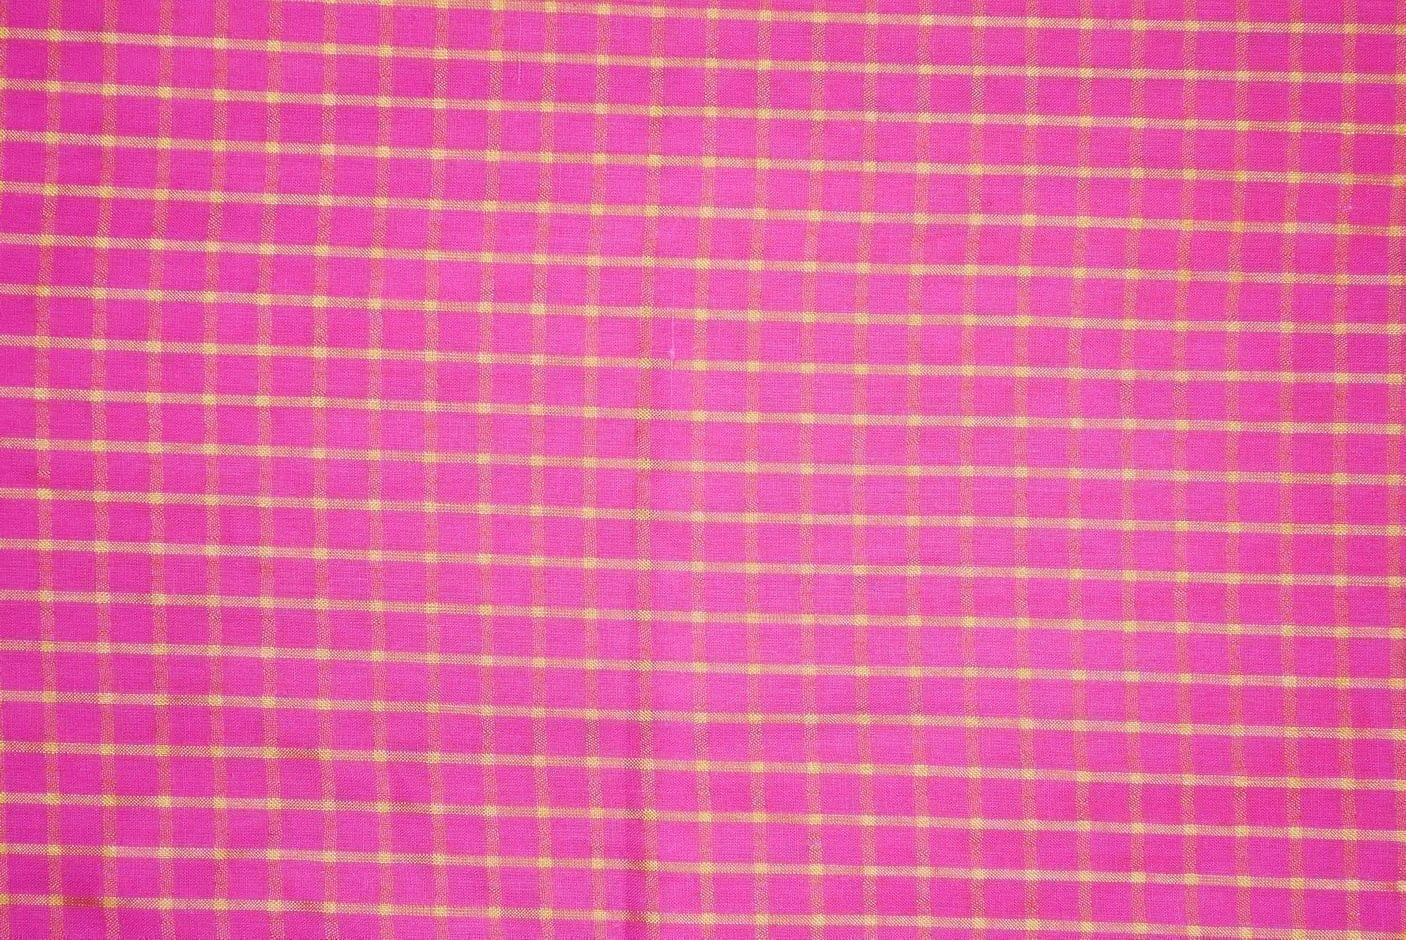 Pink Pure Cotton Base with Golden Check Plain Suit piece of 4.5 meters length CJ028 2